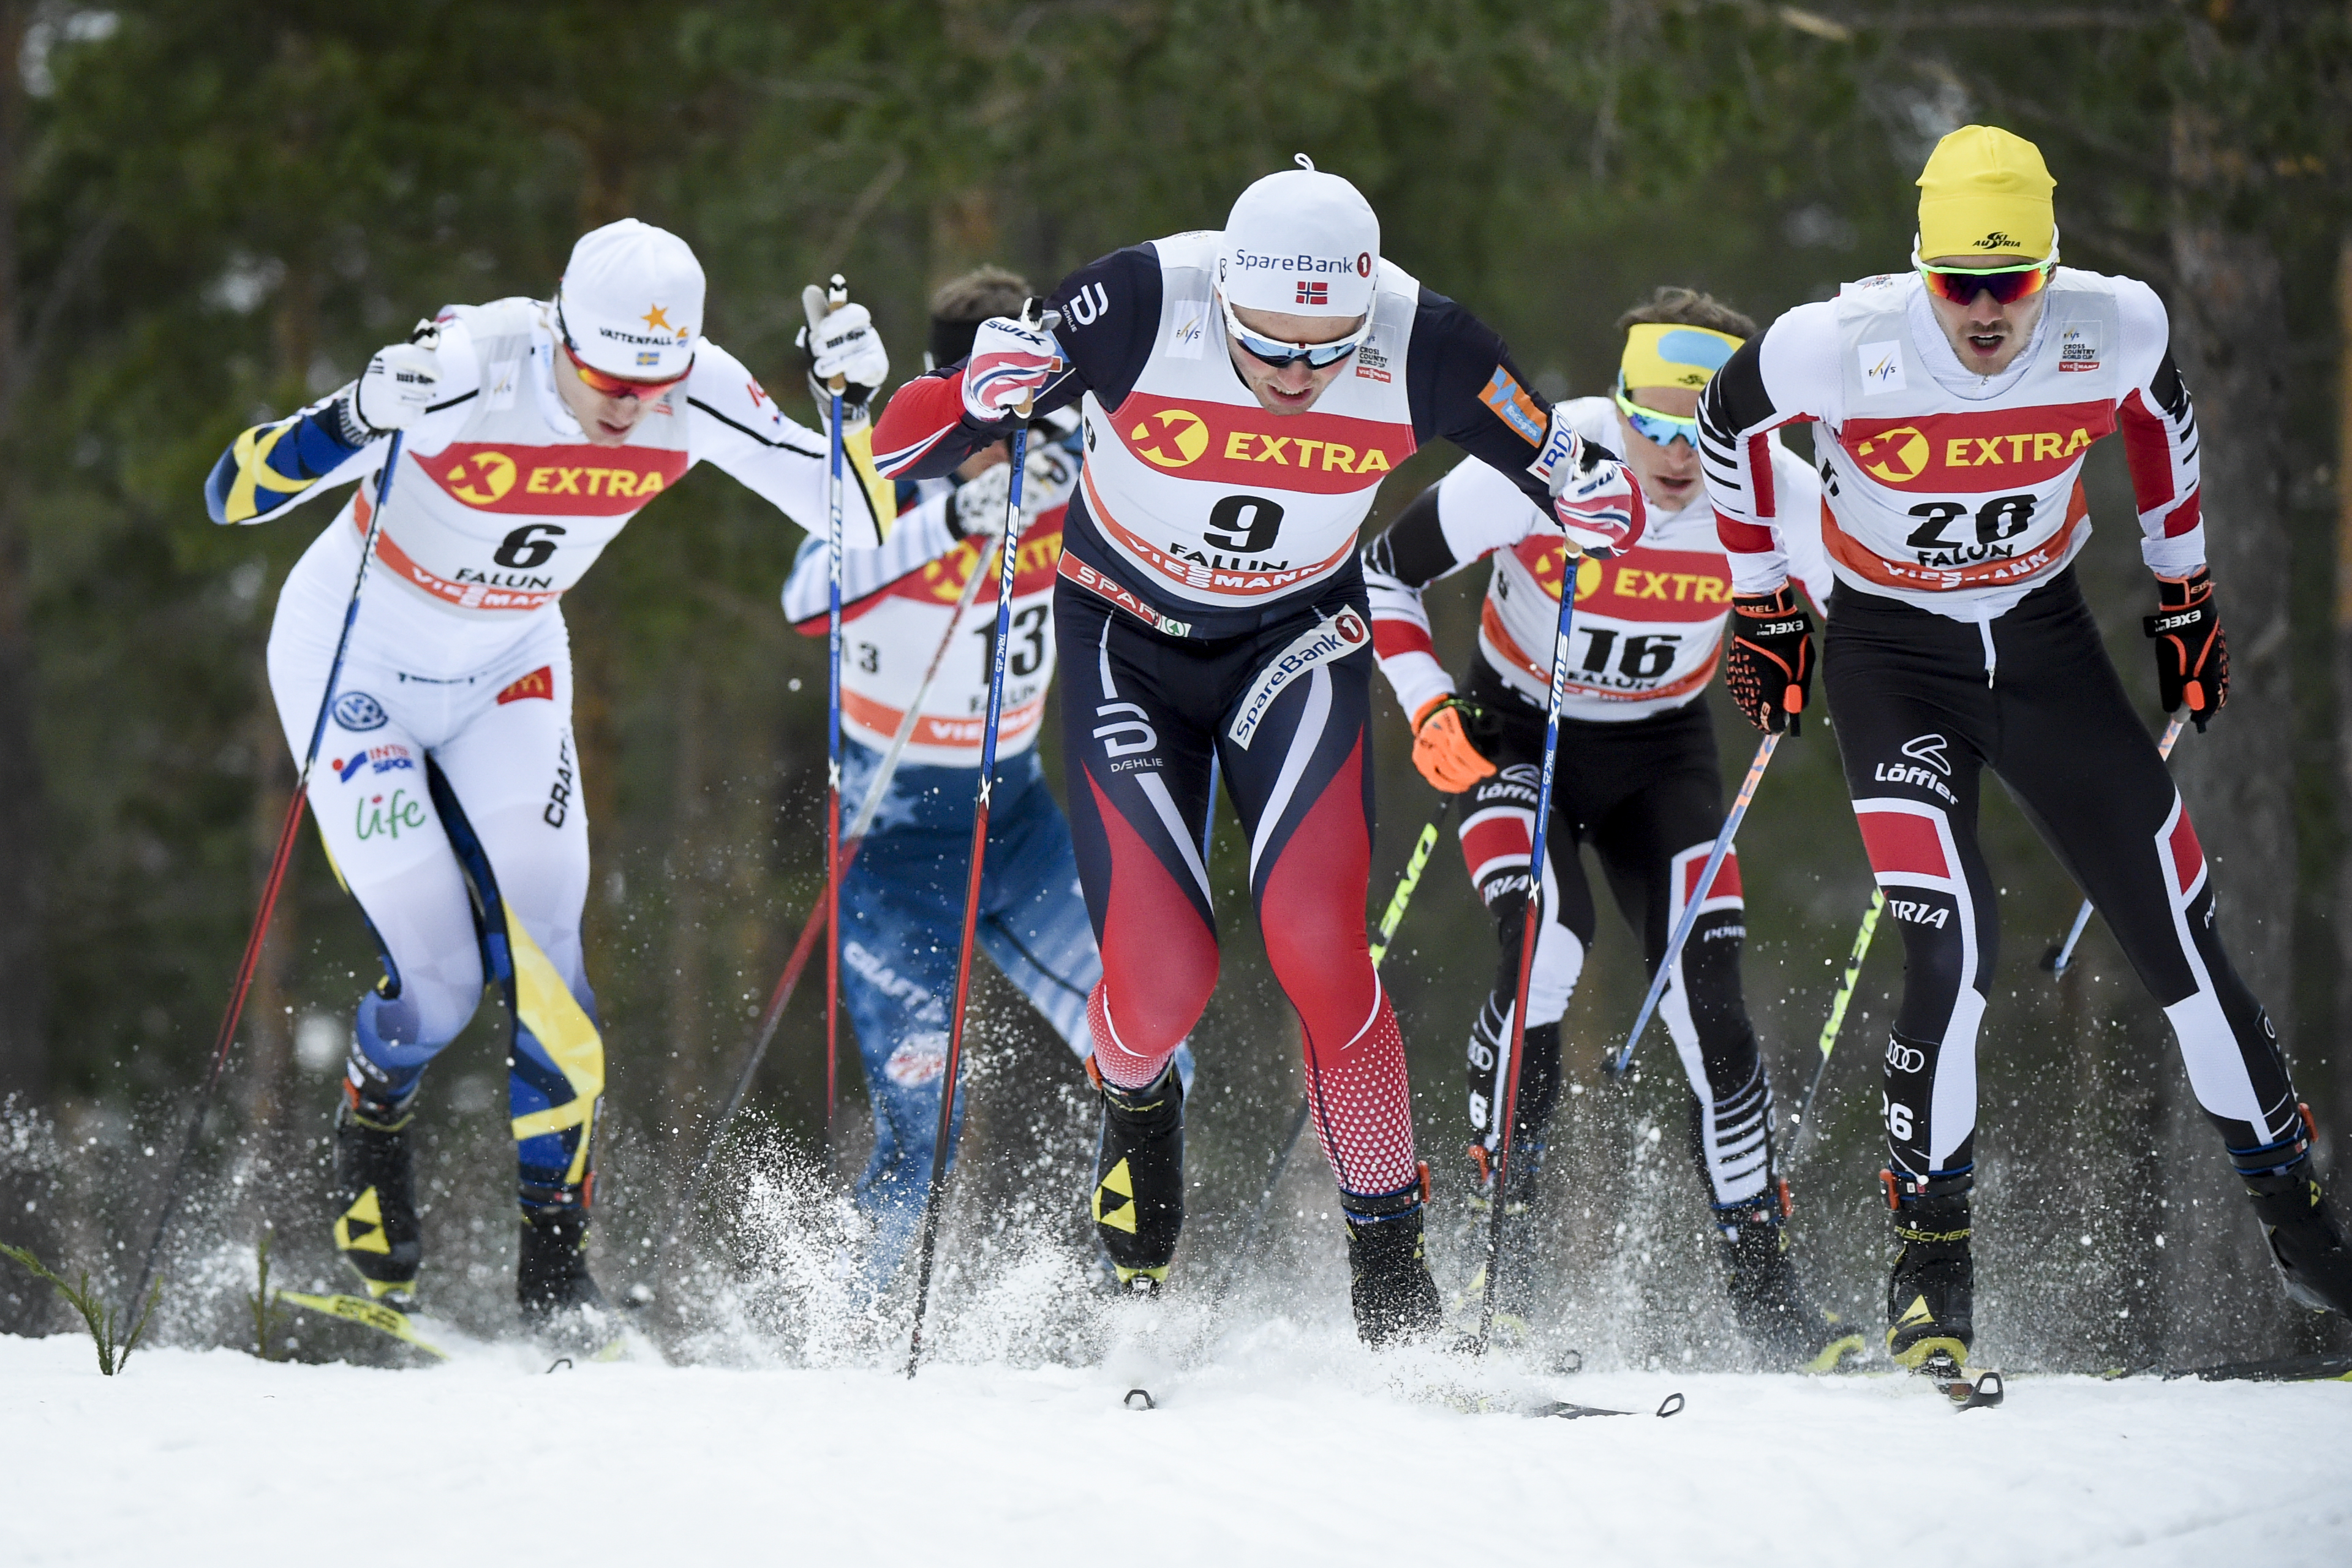 From left Sweden's Oskar Svensson (6), Norway's Emil Iversen, (9), Austria's Bernhard Tritscher (16) and Austria's Dominik Baldauf  ski during the quarter finals of the mens 1.4 km sprint qualification event at the FIS Cross Country World Cup in Falun, Sw